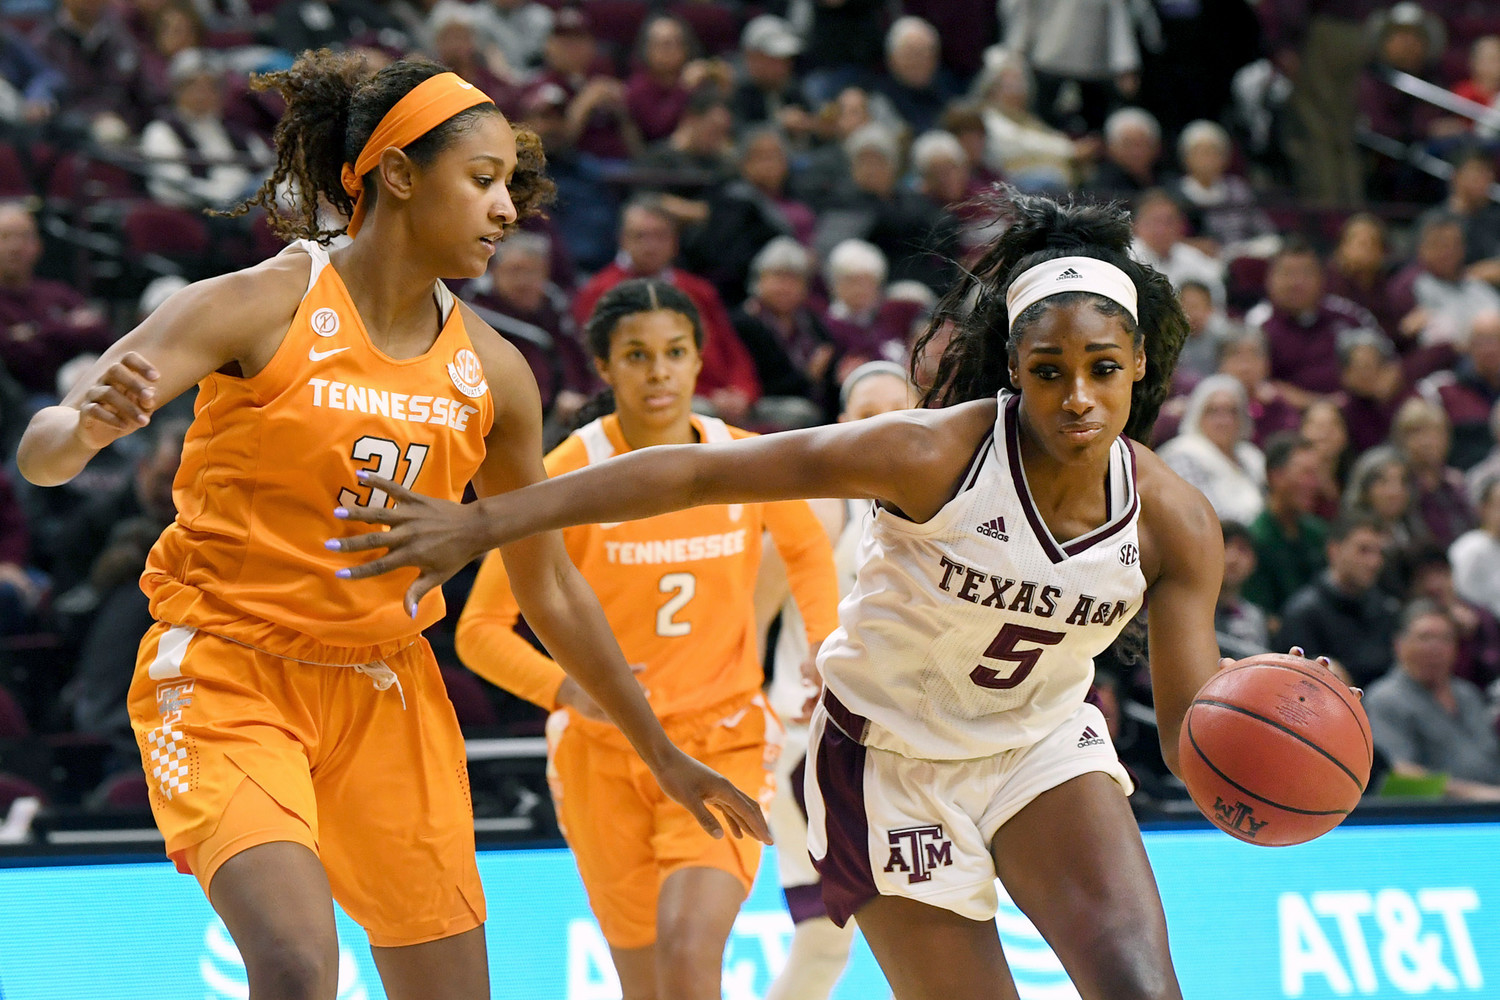 Texas A&M's Anriel Howard dribbles past Tennessee's Jaime Nared in the first quarter of an NCAA college basketball game Thursday Jan. 11 2018 in College Station Texas